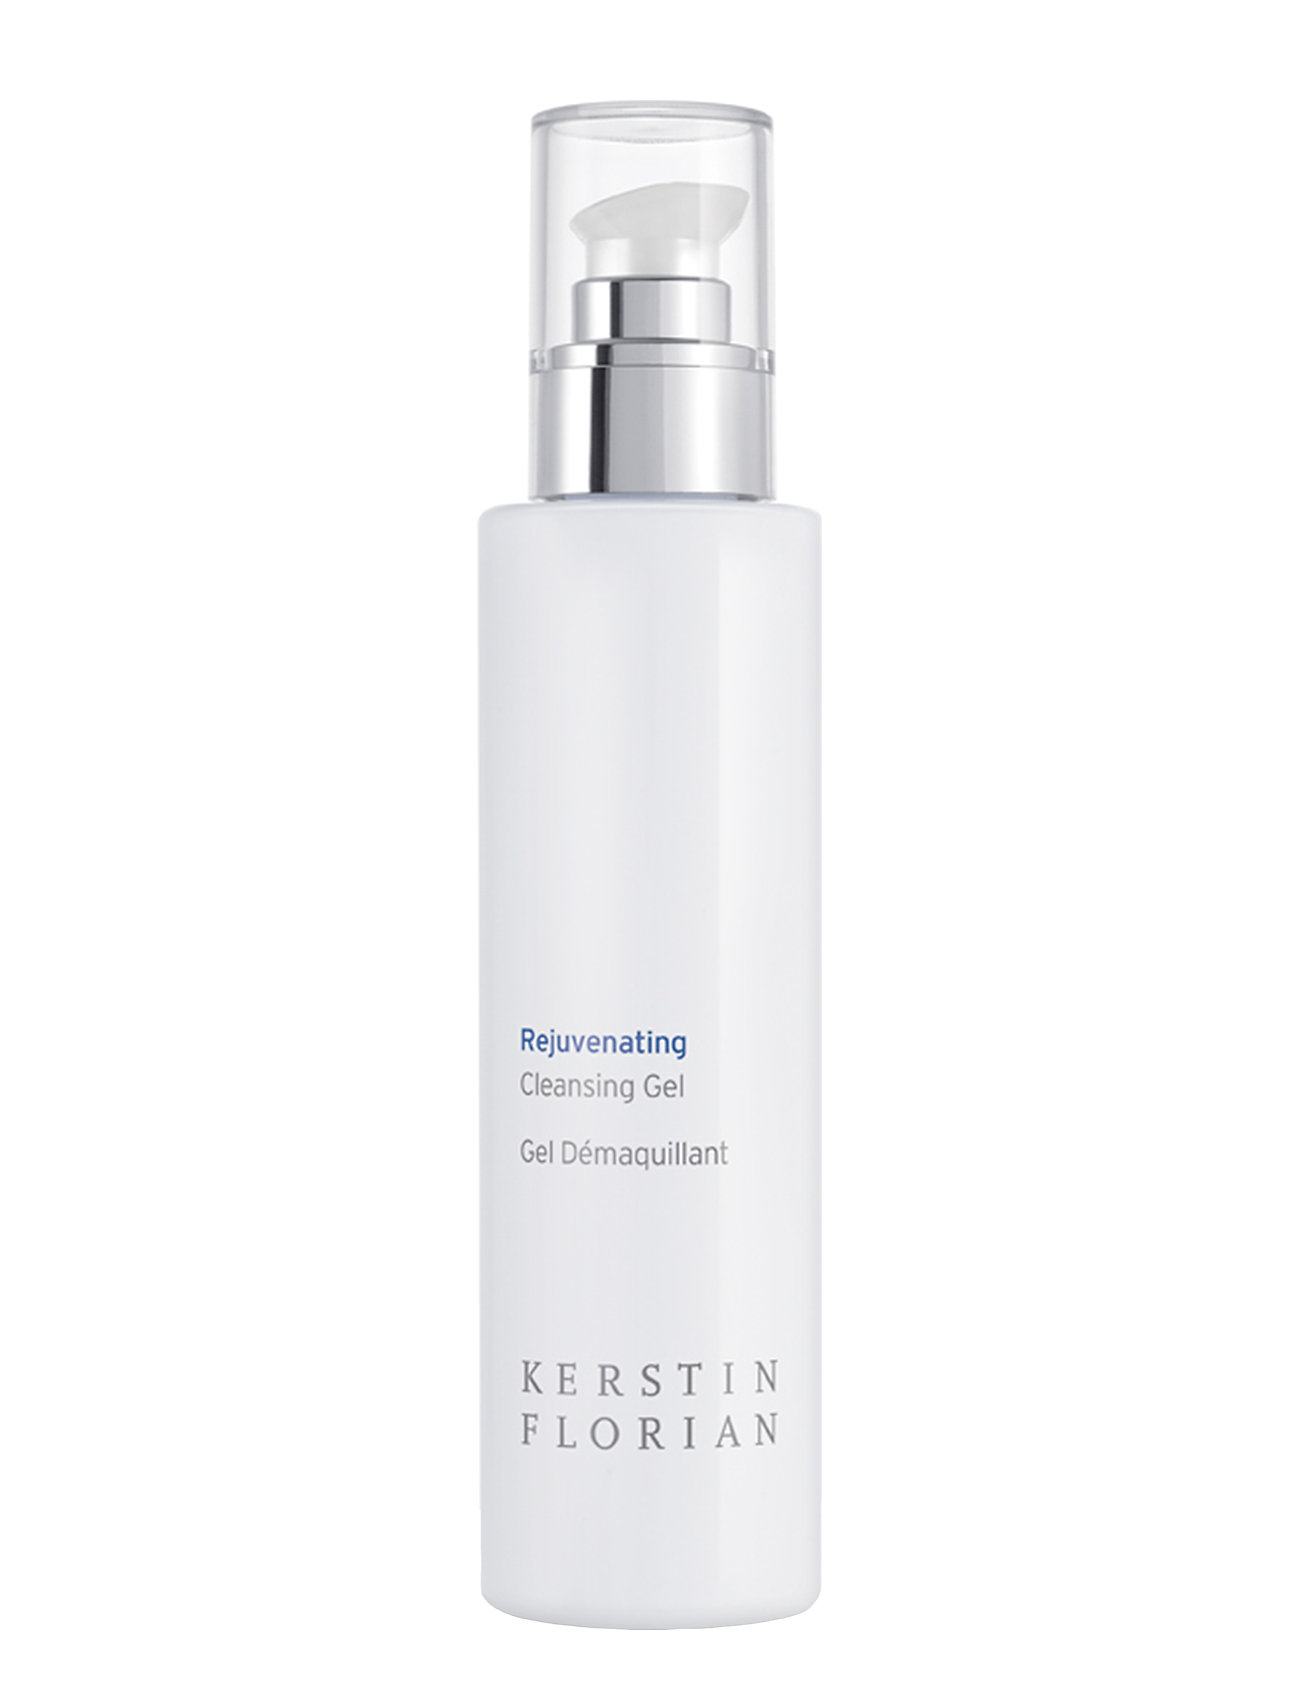 Image of Rejuvenating Cleansing Gel Beauty WOMEN Skin Care Face Cleansers Cleansing Gel Nude Kerstin Florian (3350772791)